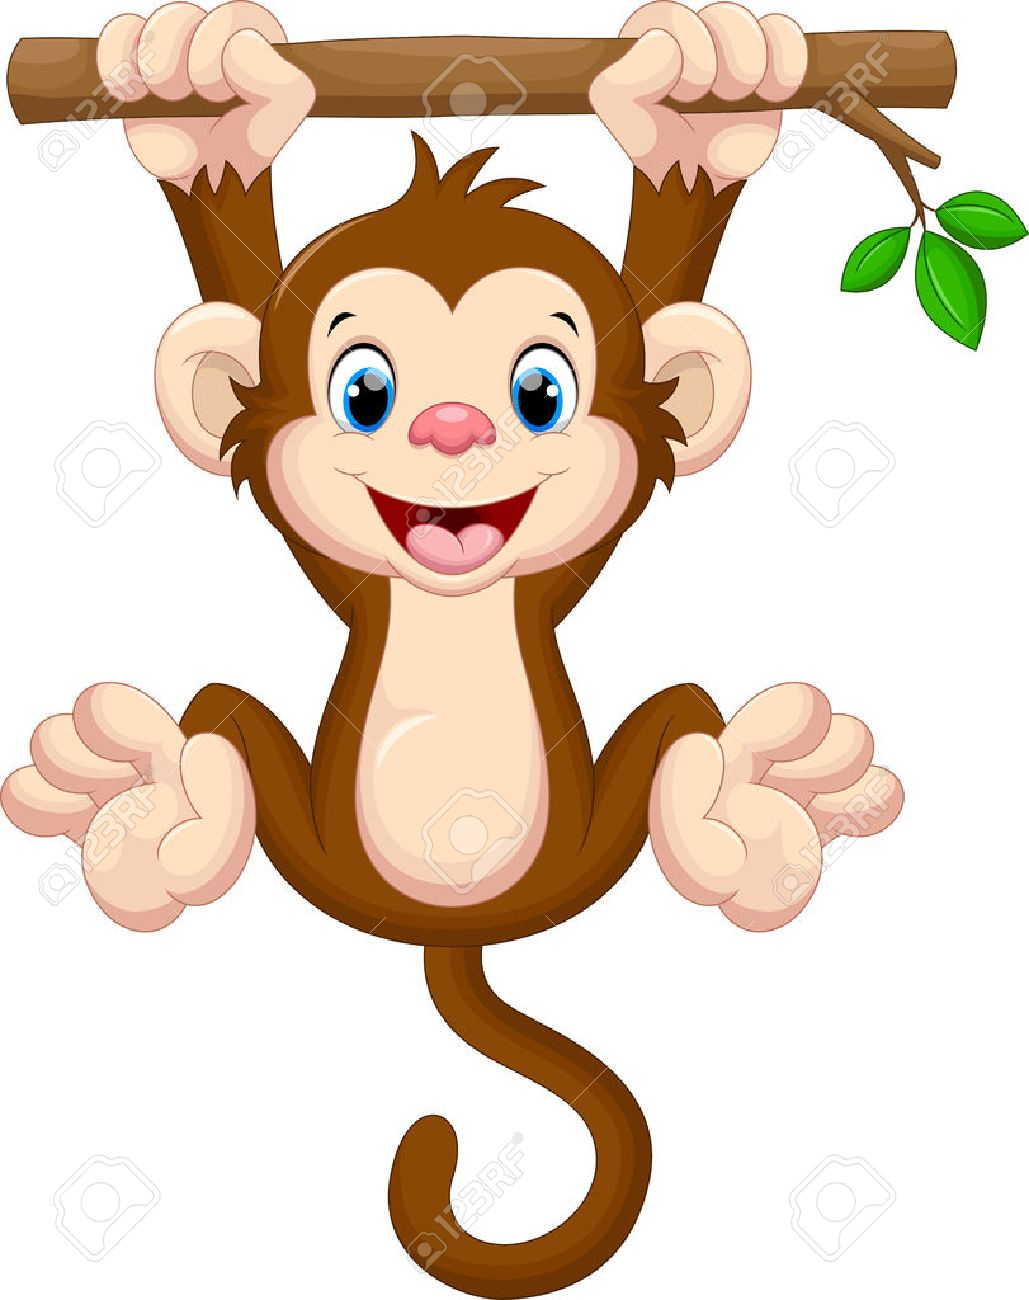 67753 Baby free clipart.